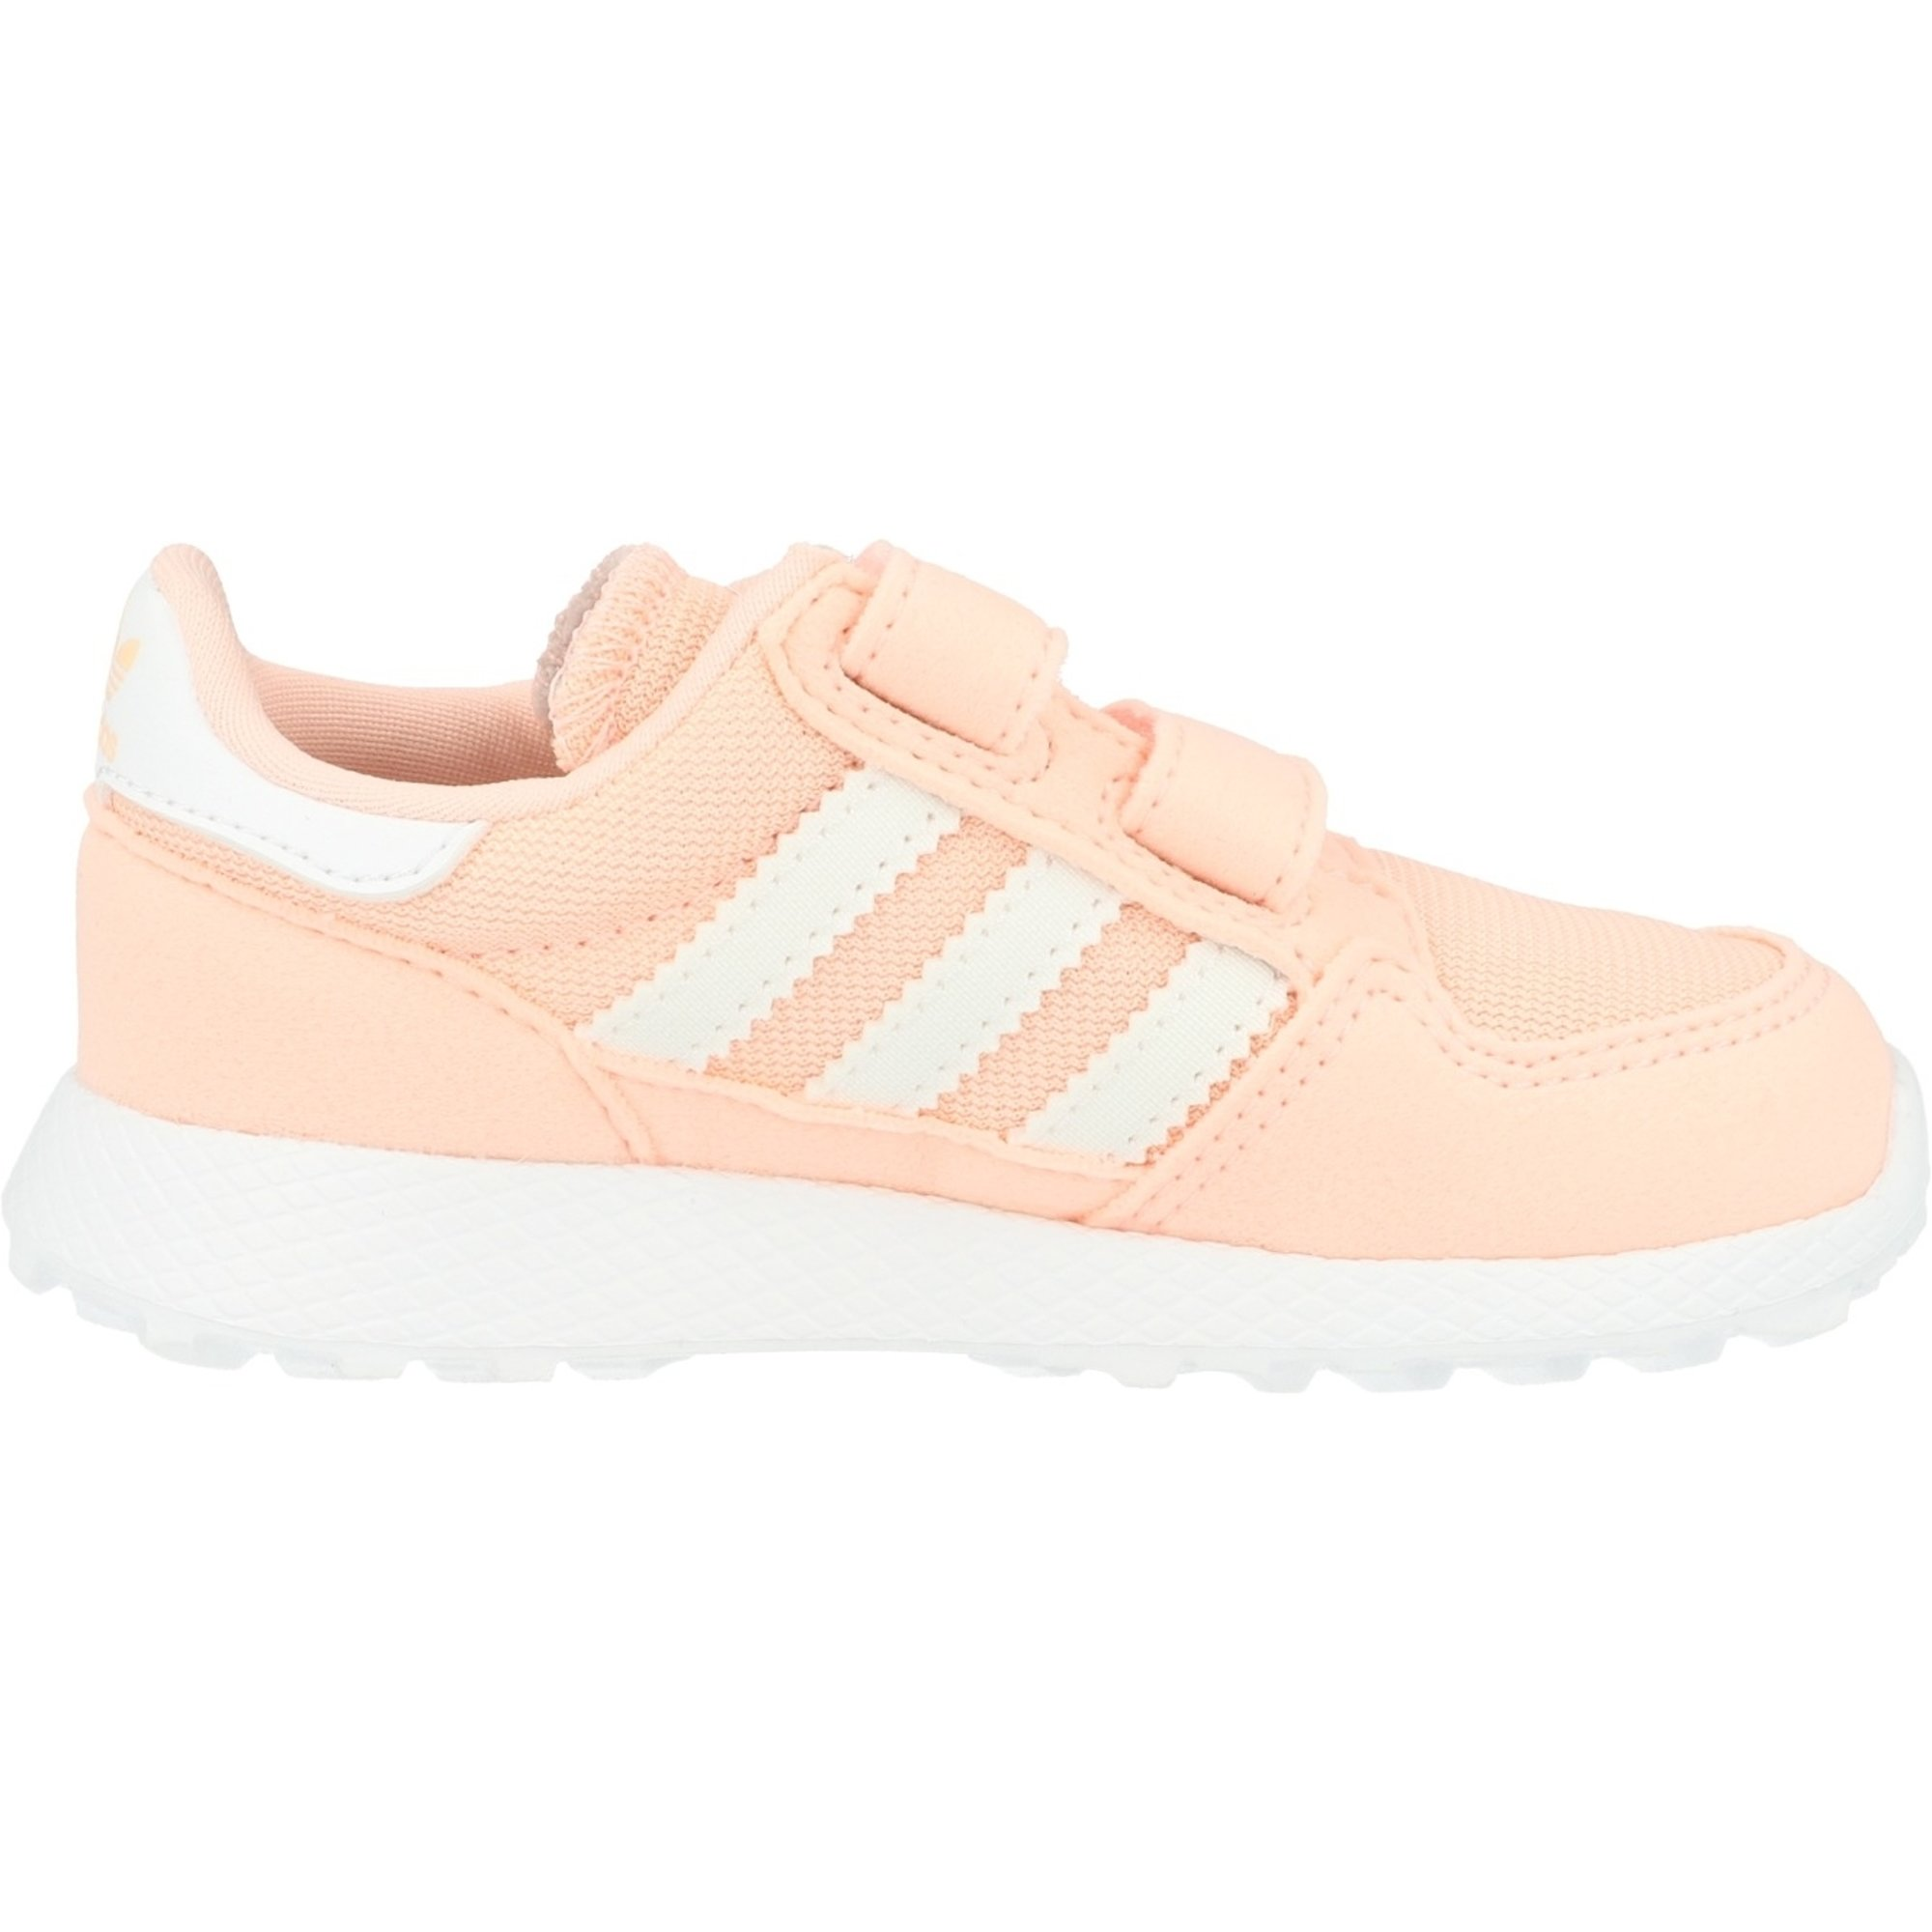 adidas Originals Forest Grove CF I Clear Orange Synthetic Suede Infant